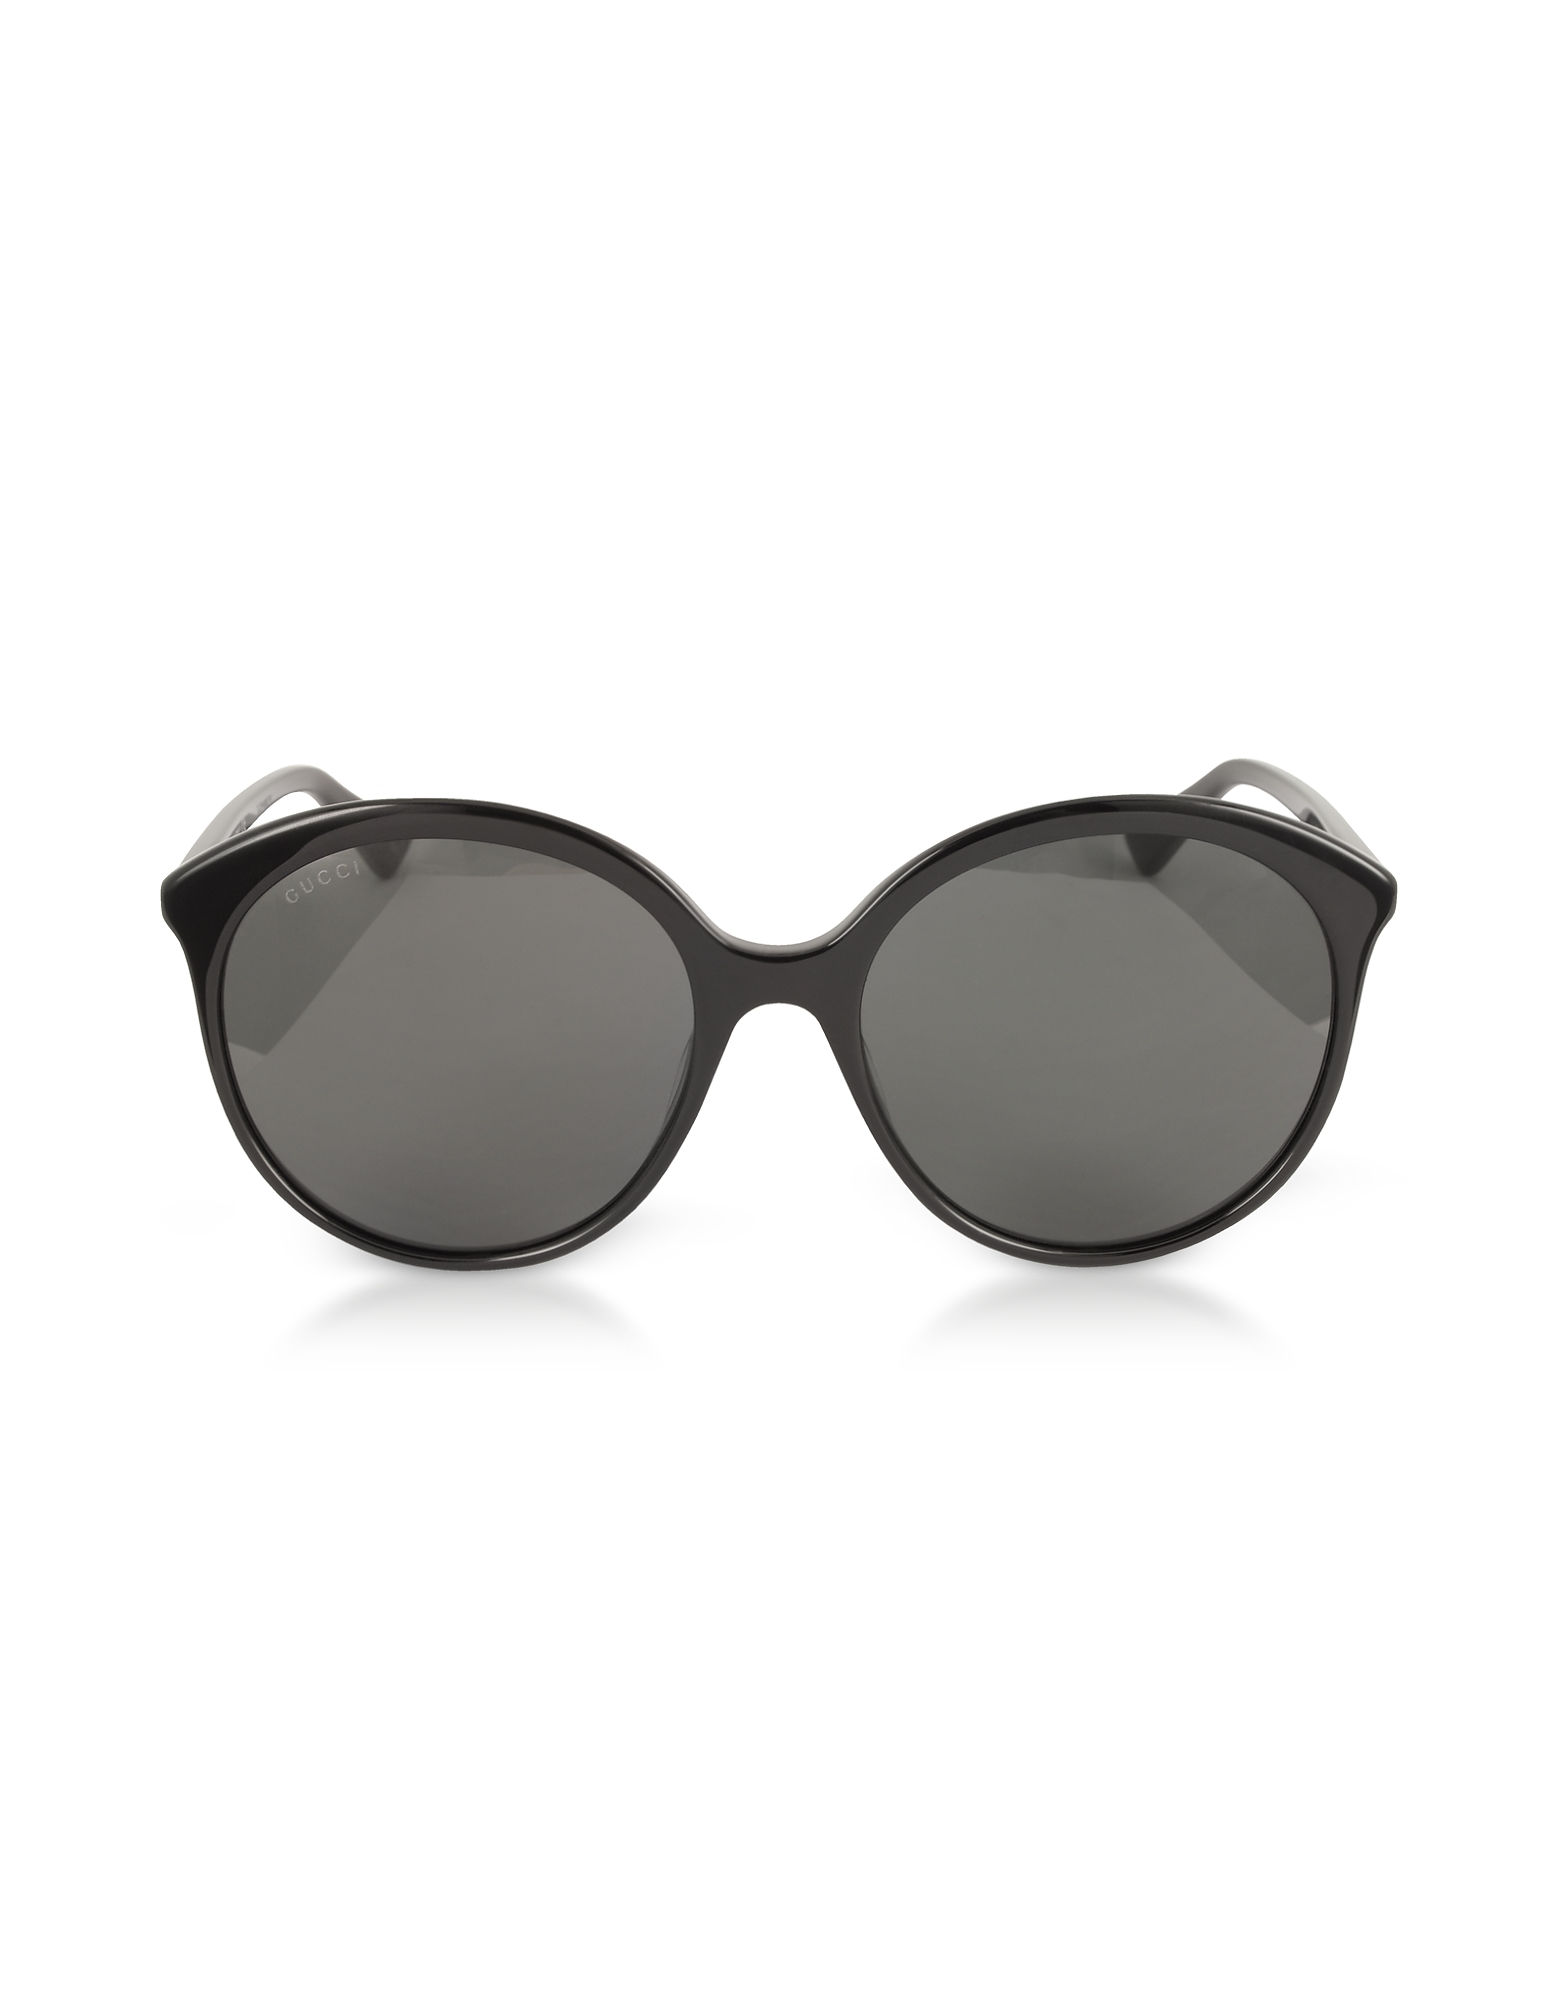 Gucci Designer Sunglasses, GG0257S Specialized Fit Round-frame Black Acetate Sunglasses